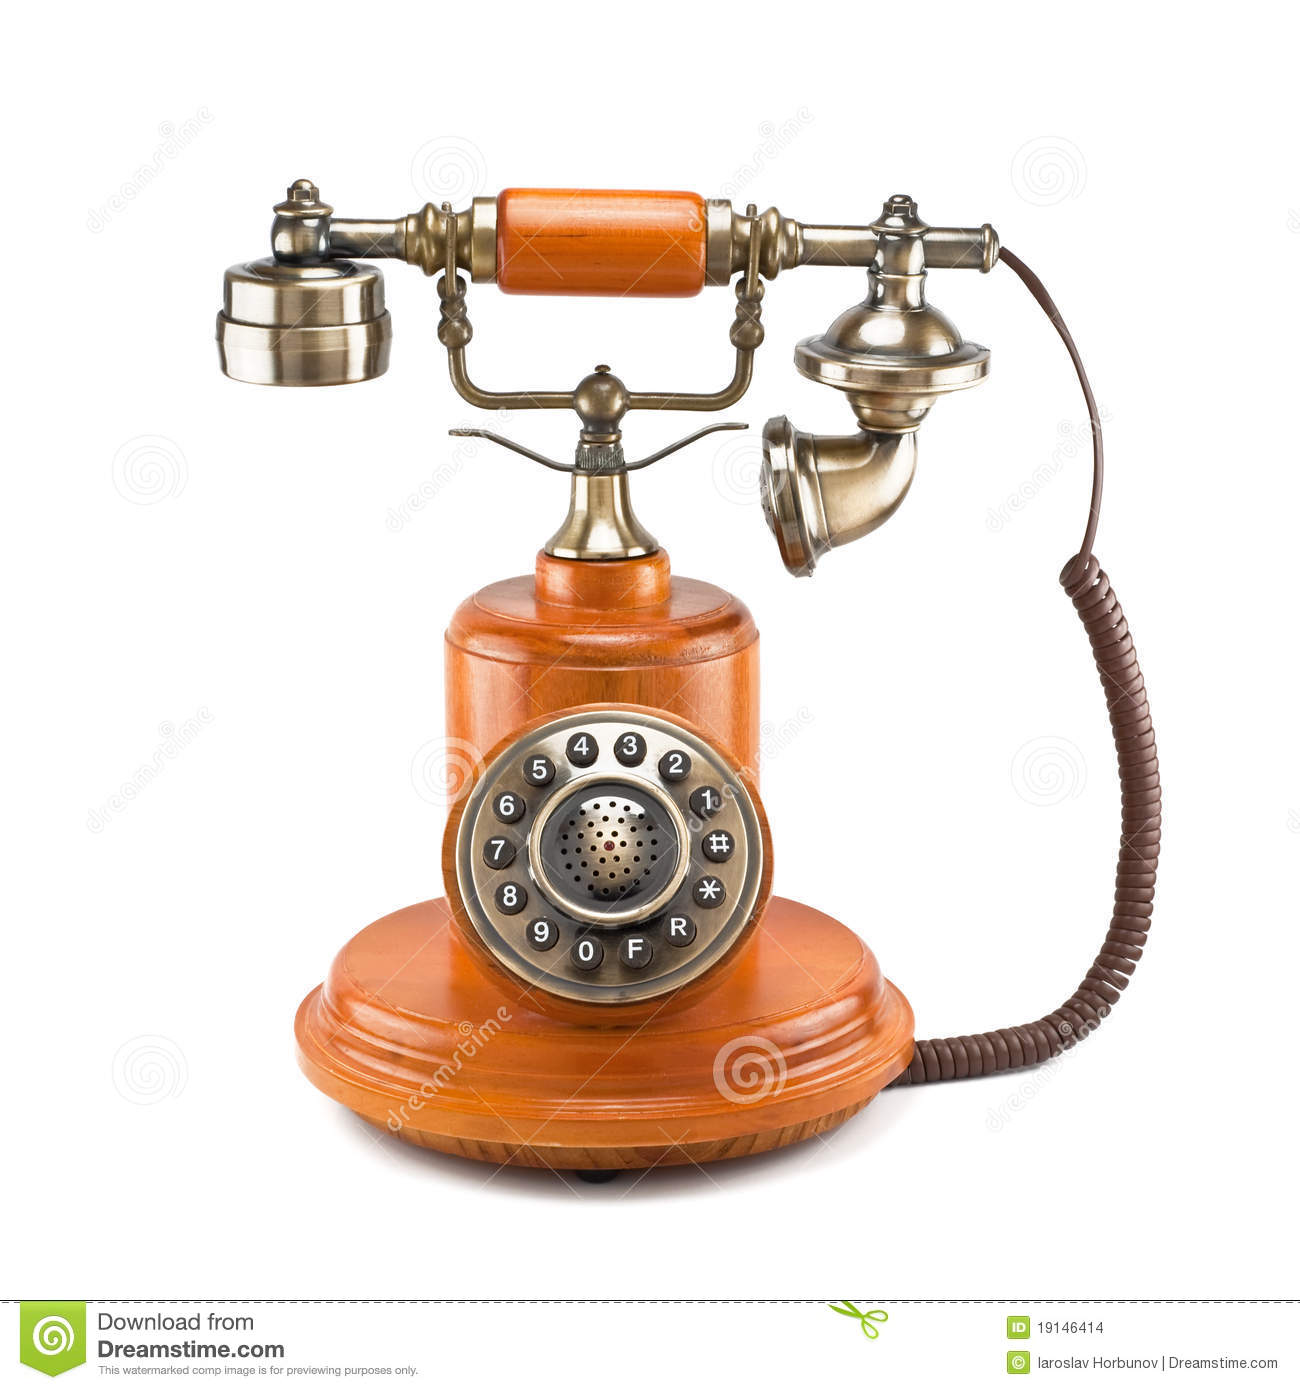 More similar stock images of ` Old telephone `